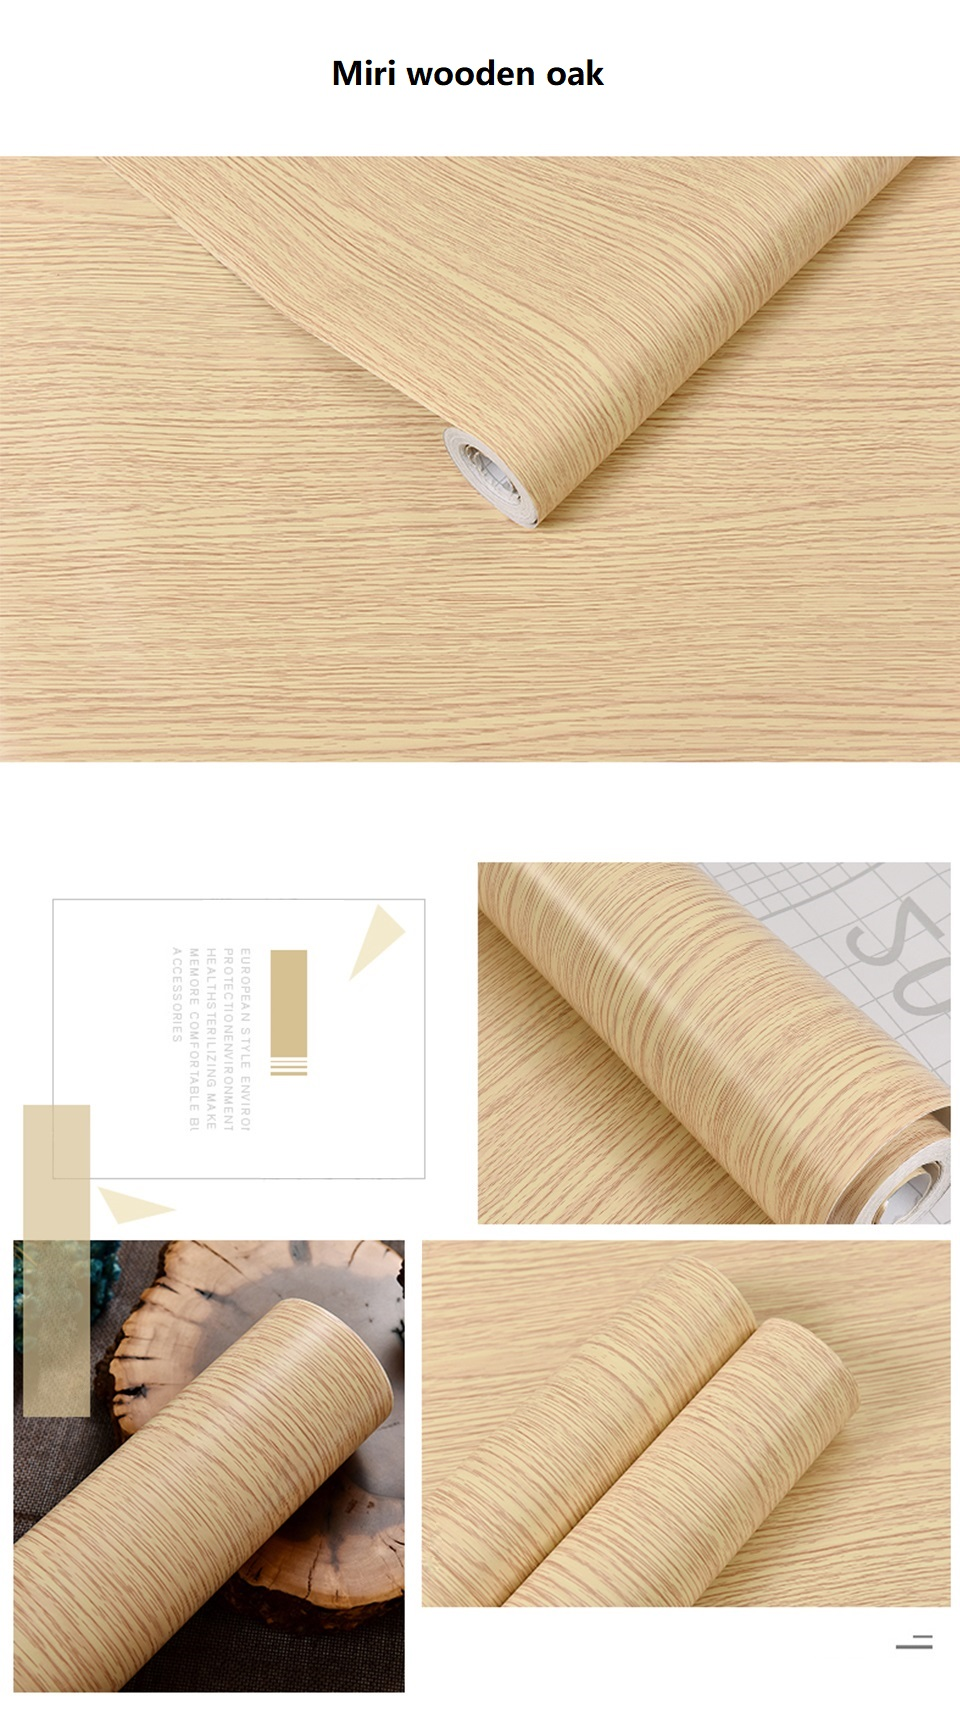 PVC Vinyl Wood Grain Contact Paper for Kitchen Cabinets Table Sticker Waterproof Self adhesive Wallpaper Phone Case Stickers HTB1qYNWhVuWBuNjSszbq6AS7FXaH